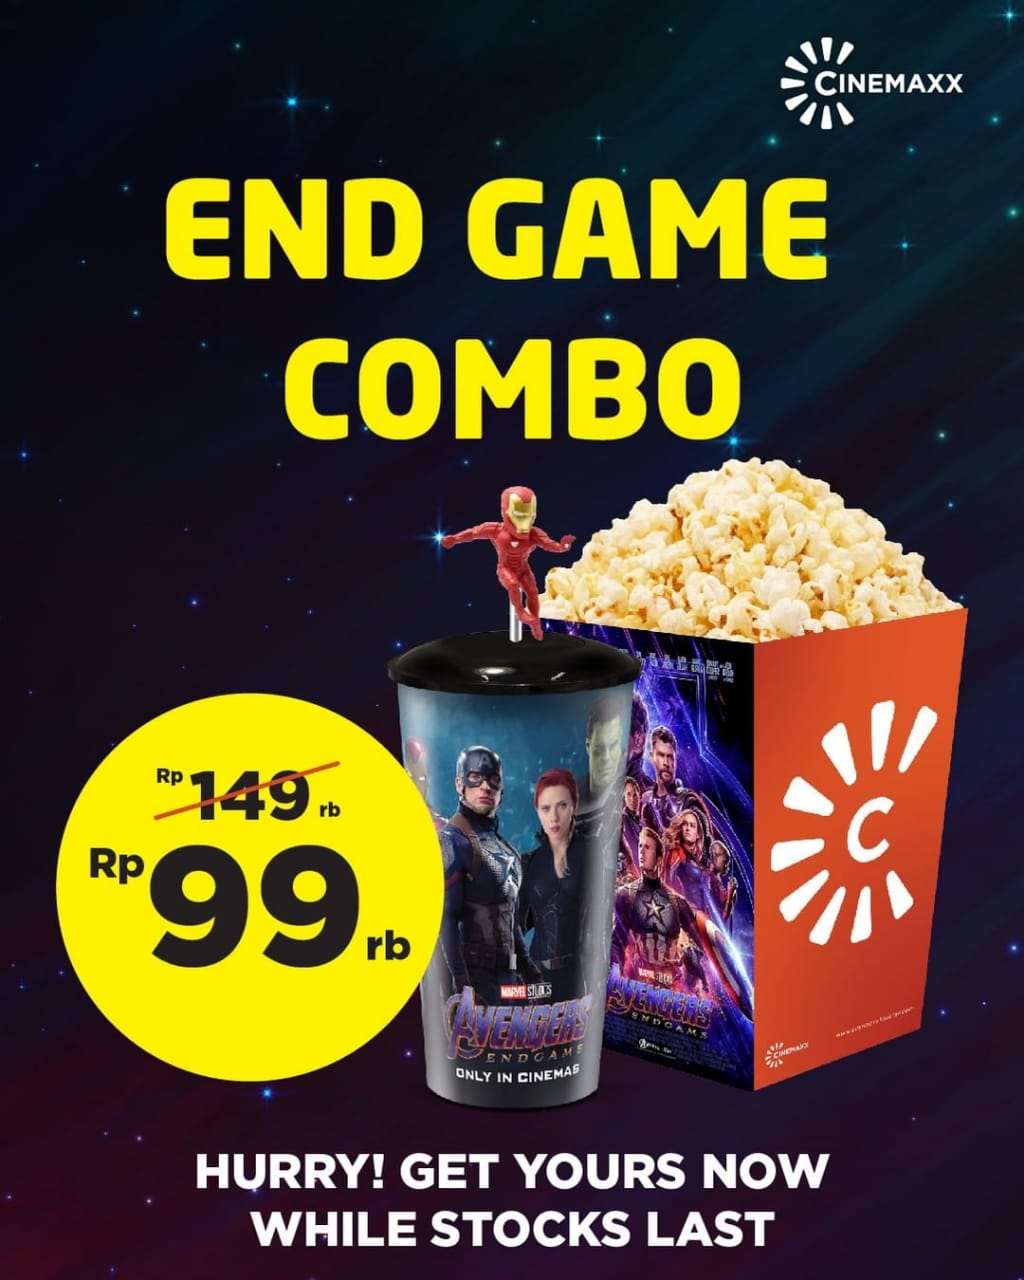 Cinemaxx Theater Promo Toppers Edisi Avengers Endgame Cuma - Cinemaxx Coupons